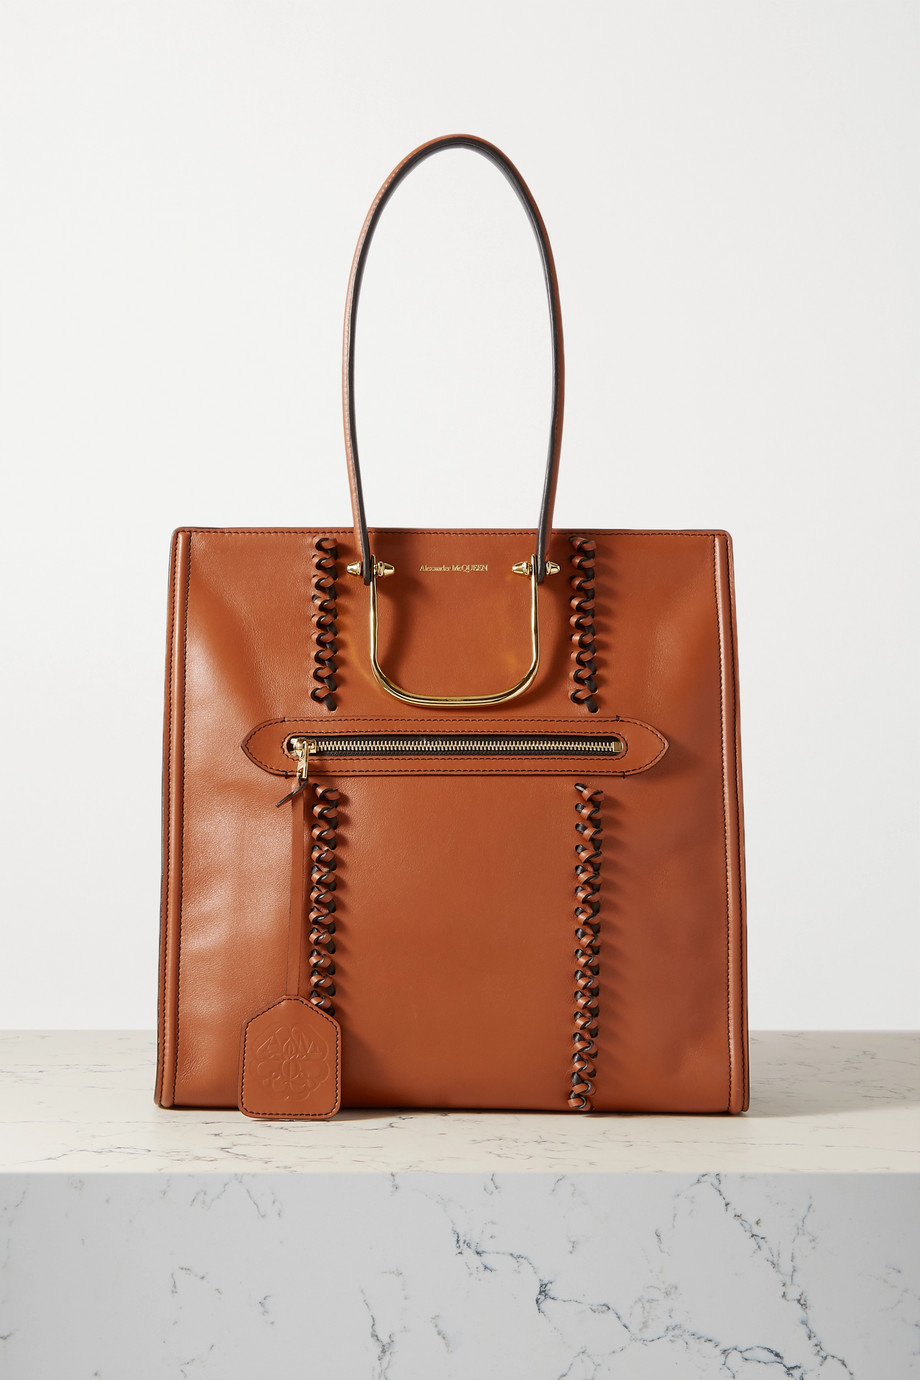 Alexander McQueen The Tall Story braided leather tote